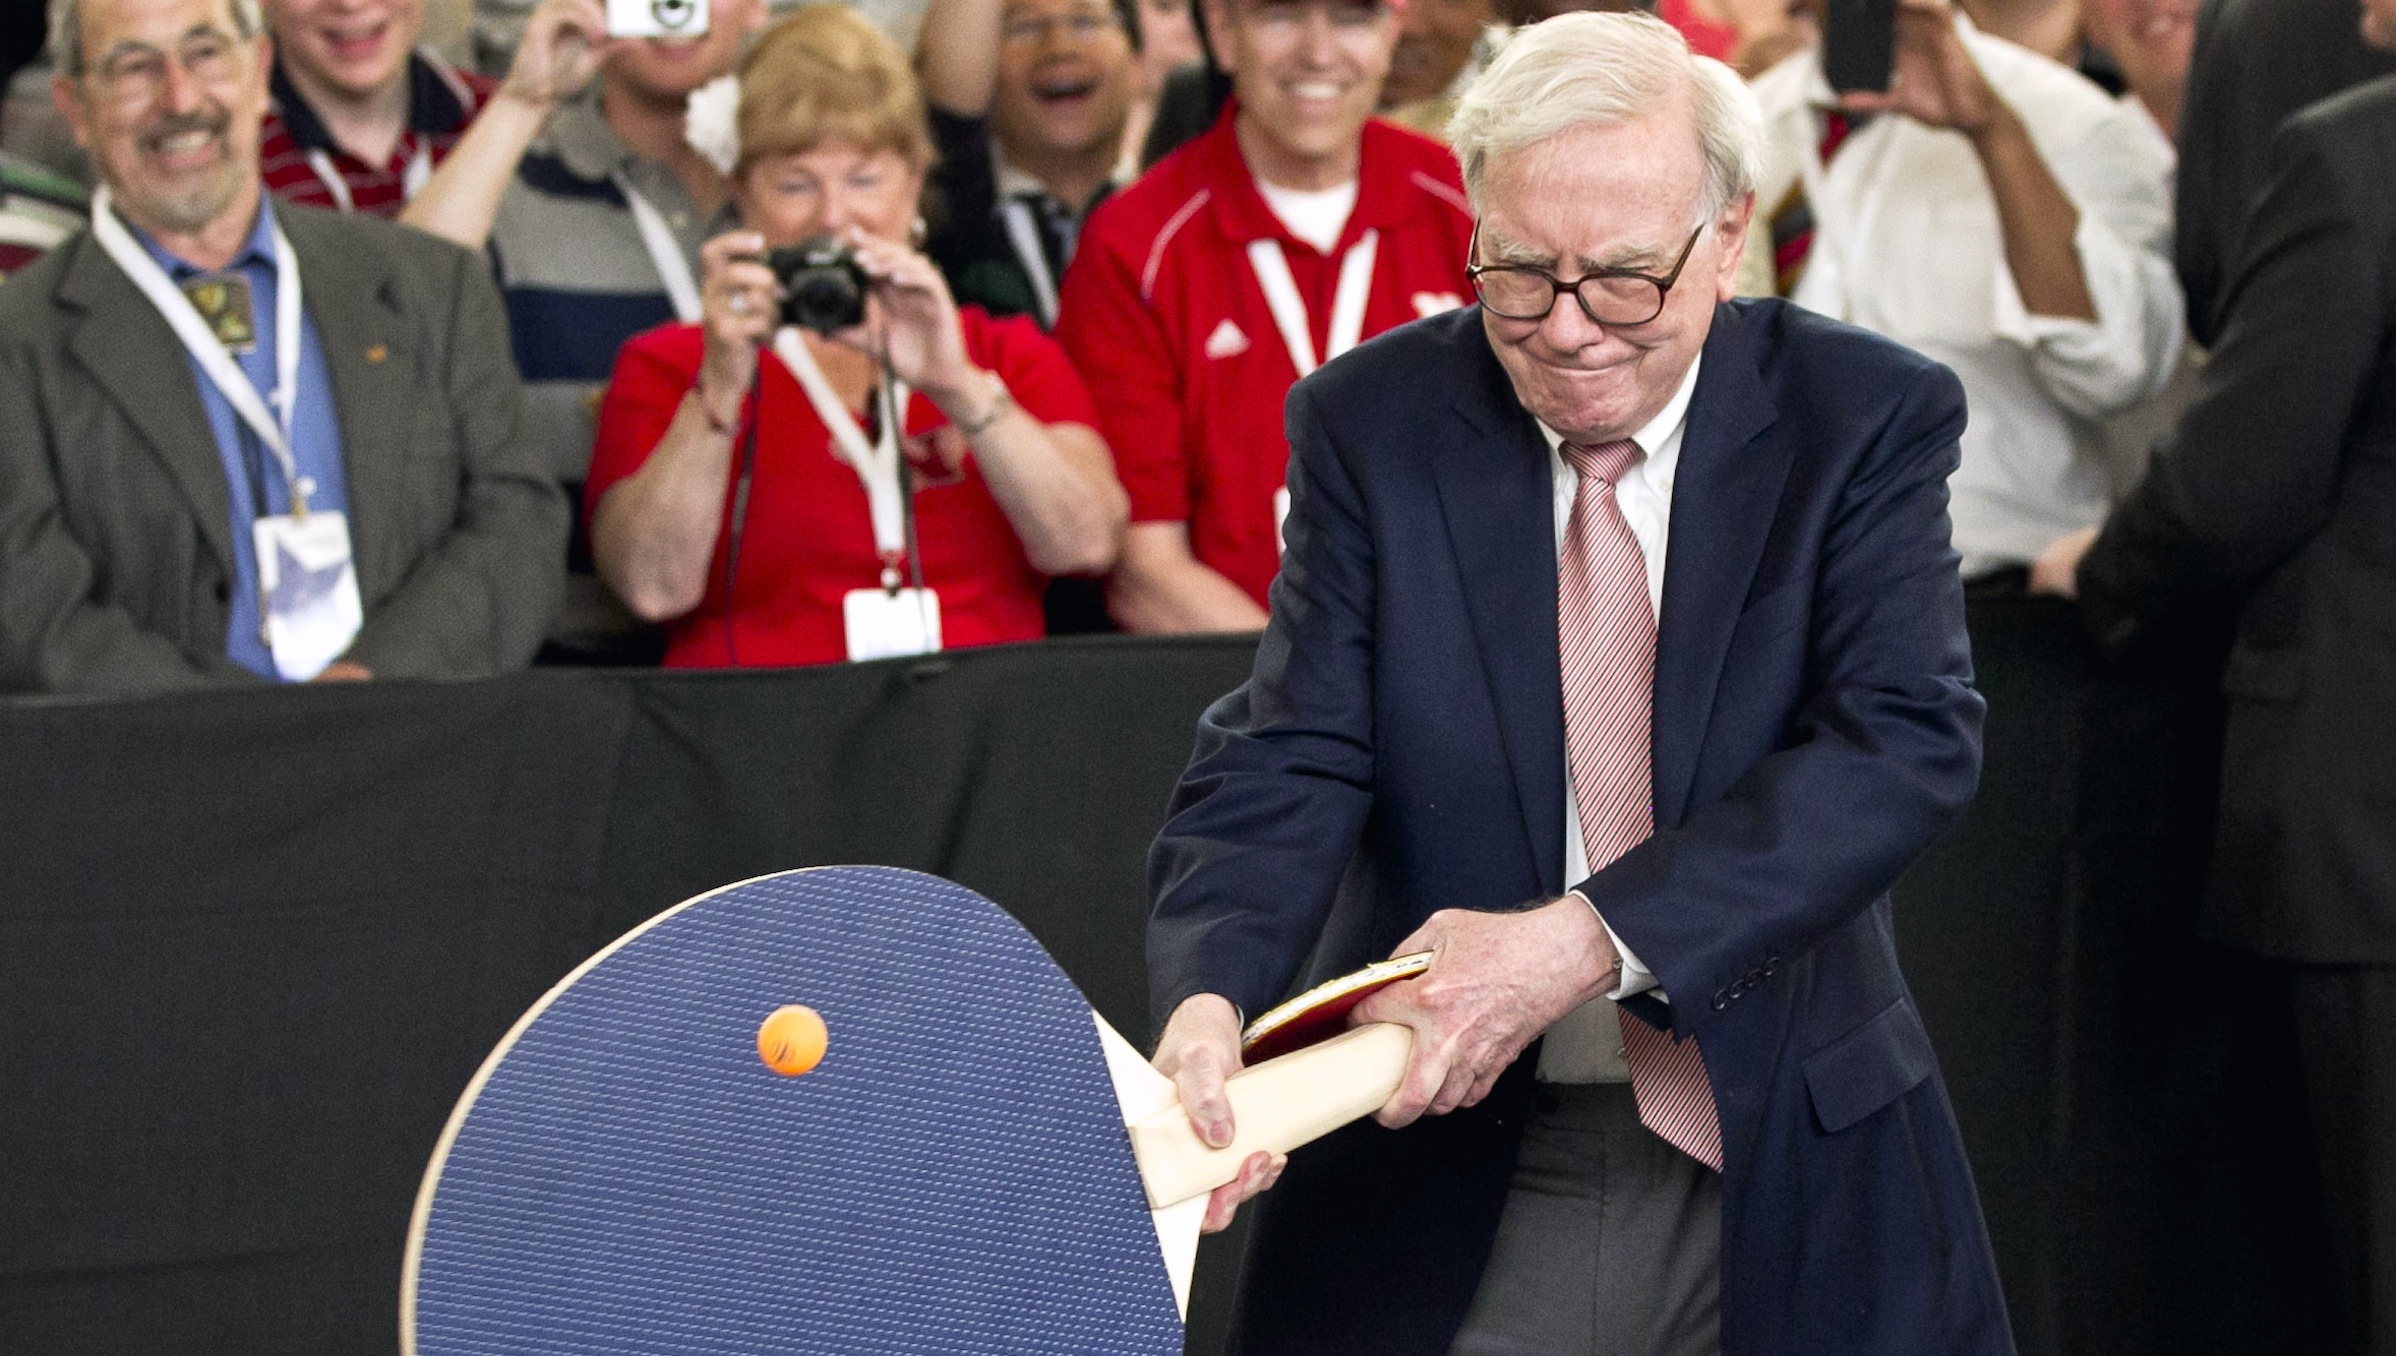 Shareholders watch as Warren Buffett, chairman and CEO of Berkshire Hathaway, deploys an oversize bat against table tennis prodigy Ariel Hsing in Omaha, Neb., Sunday, May 6, 2012. Berkshire Hathaway is holding its annual shareholders meeting this weekend. (AP Photo/Nati Harnik)